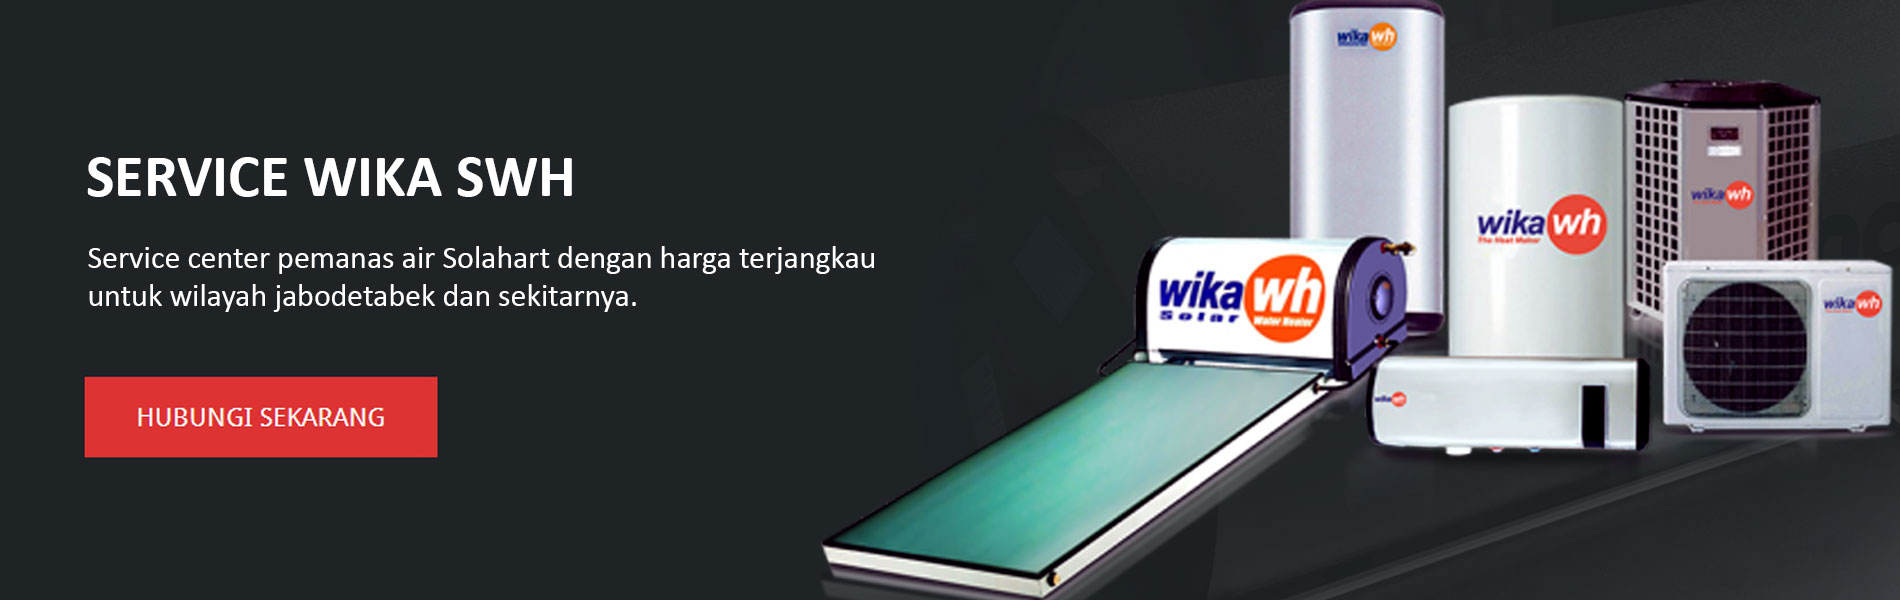 Service Wika SWH